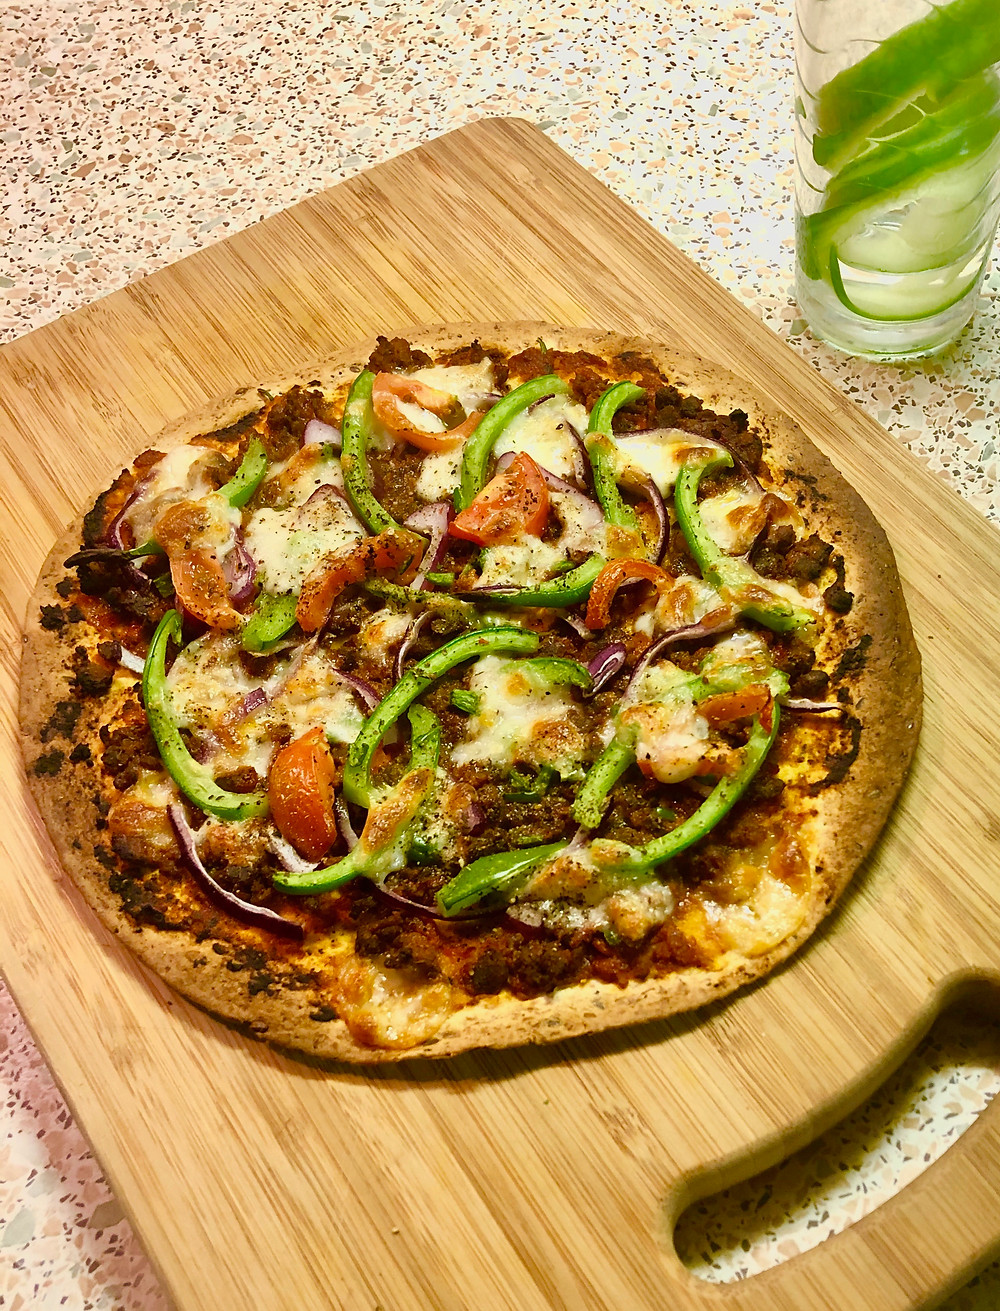 Homemade pizza on board